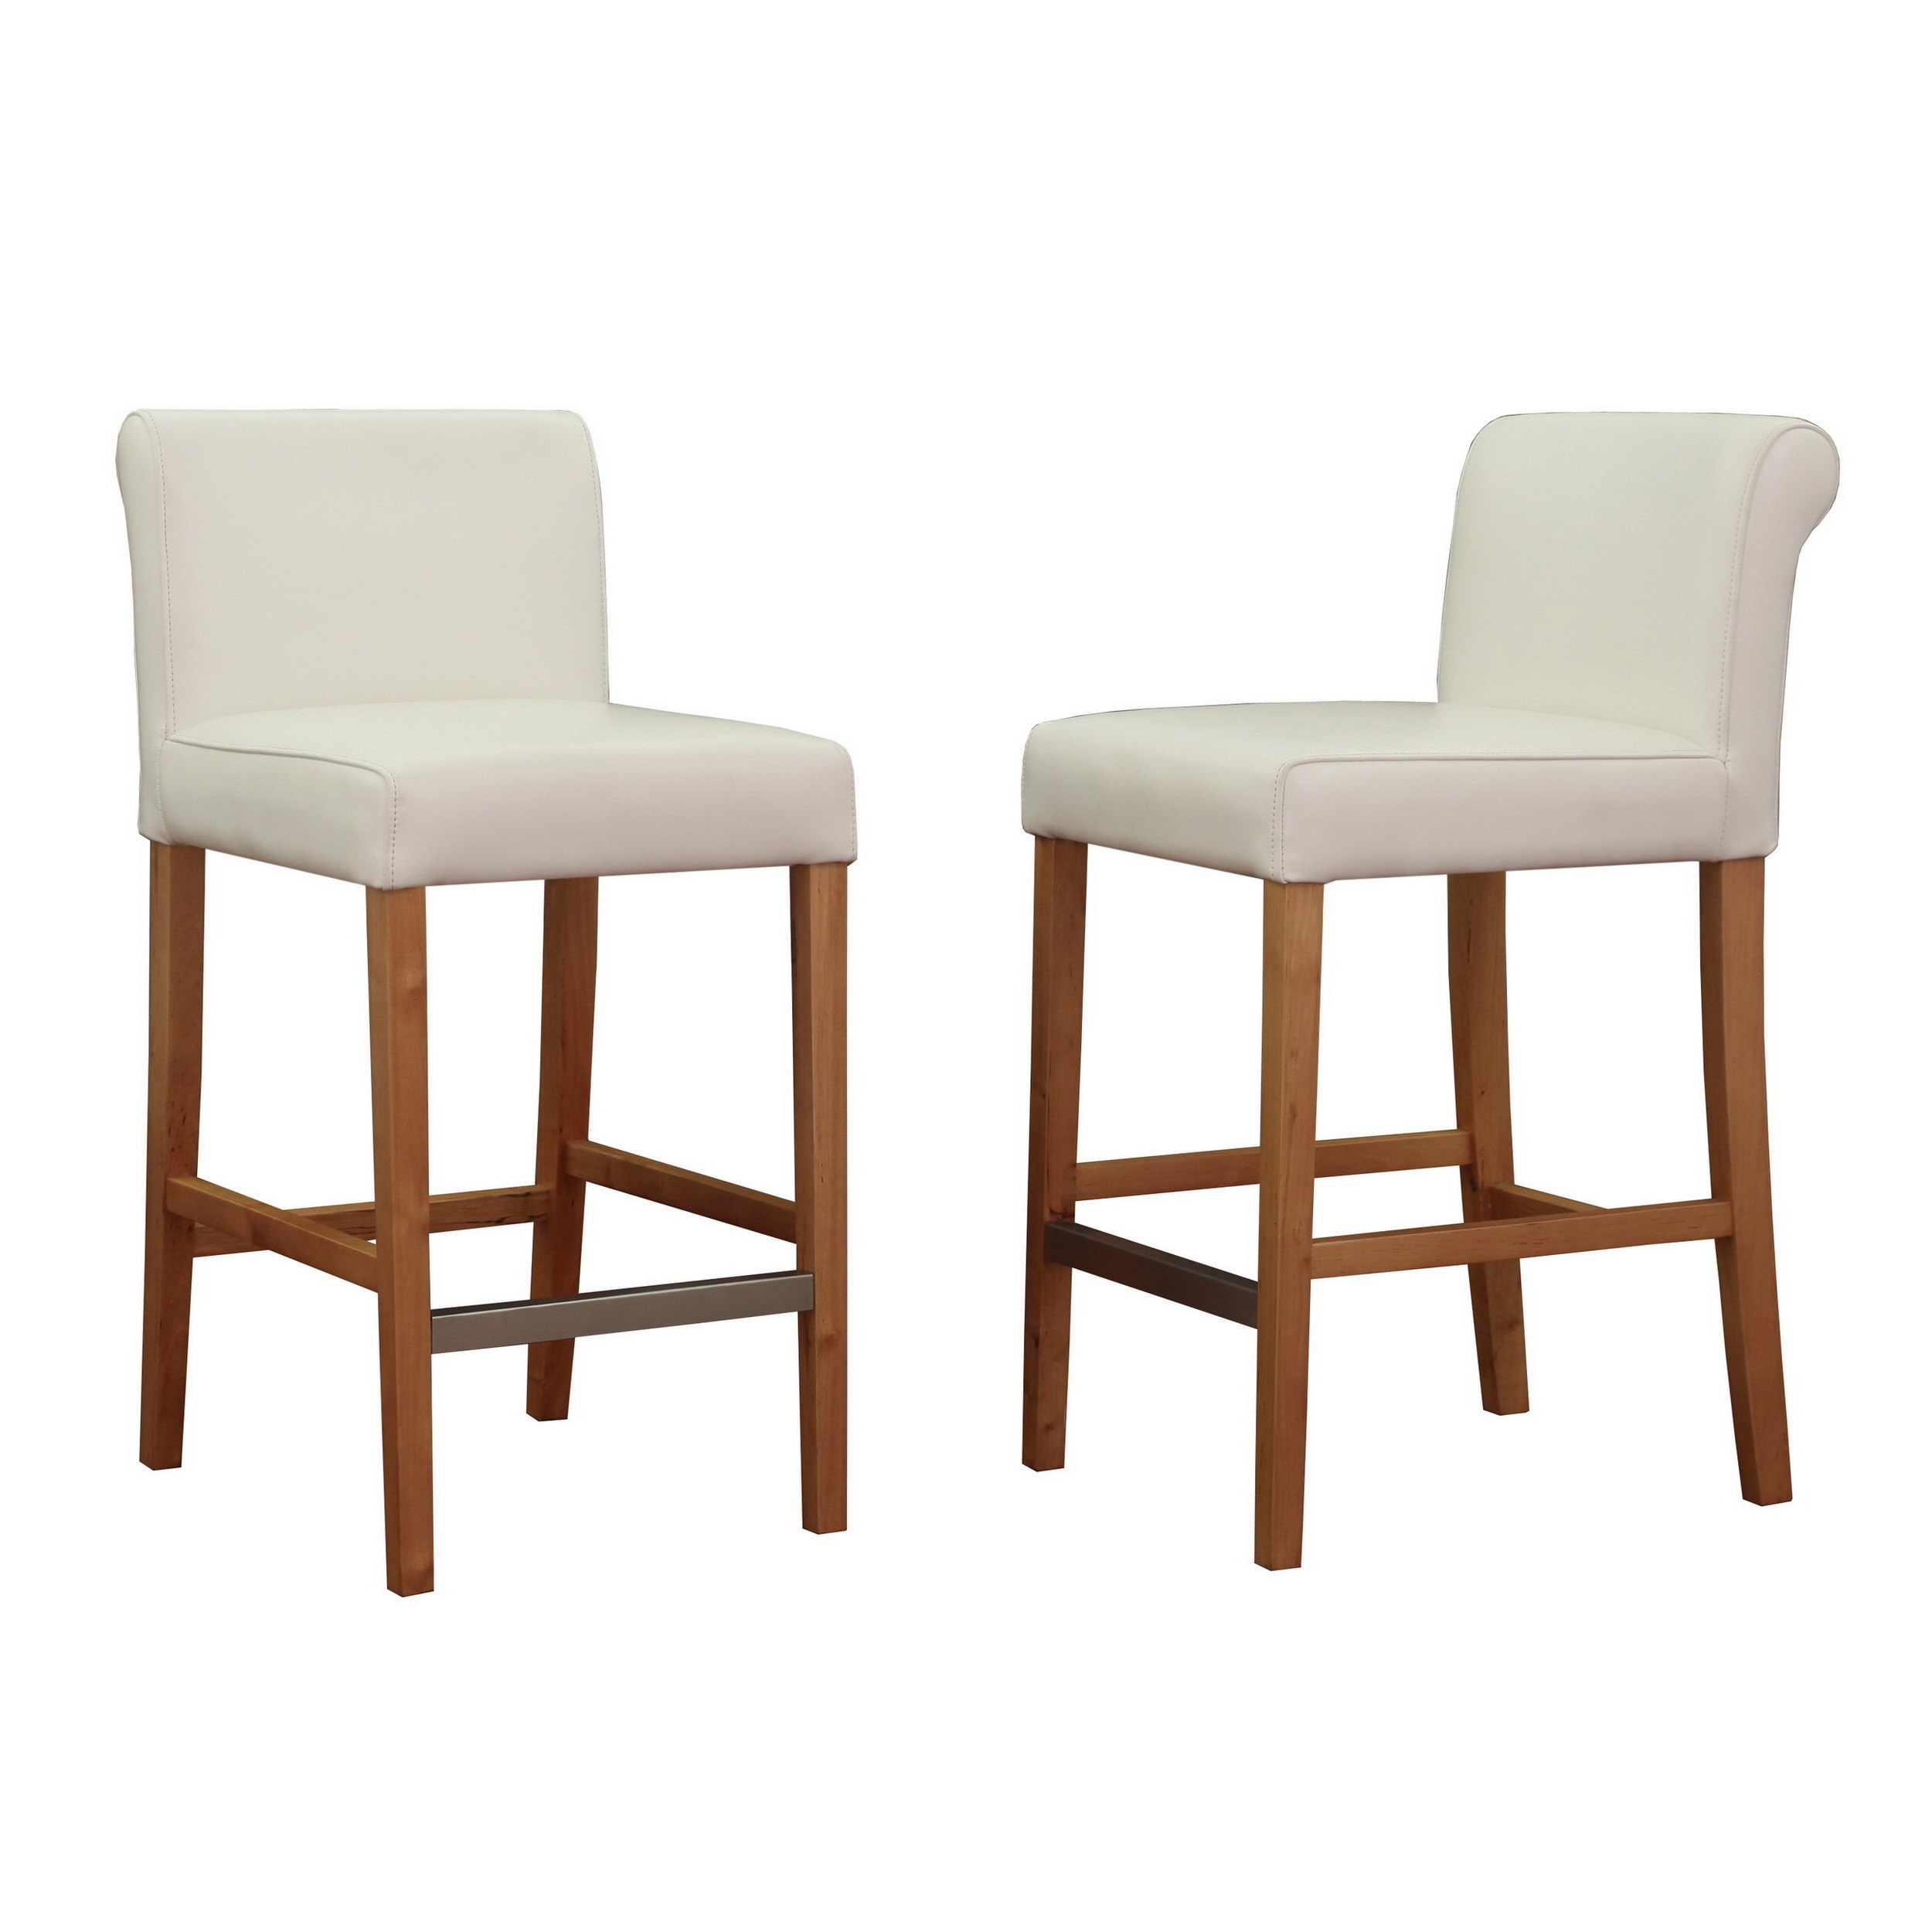 Shop jasper laine cosmopolitan modern white bicast leather counter stools set of 2 free shipping today overstock com 5594692